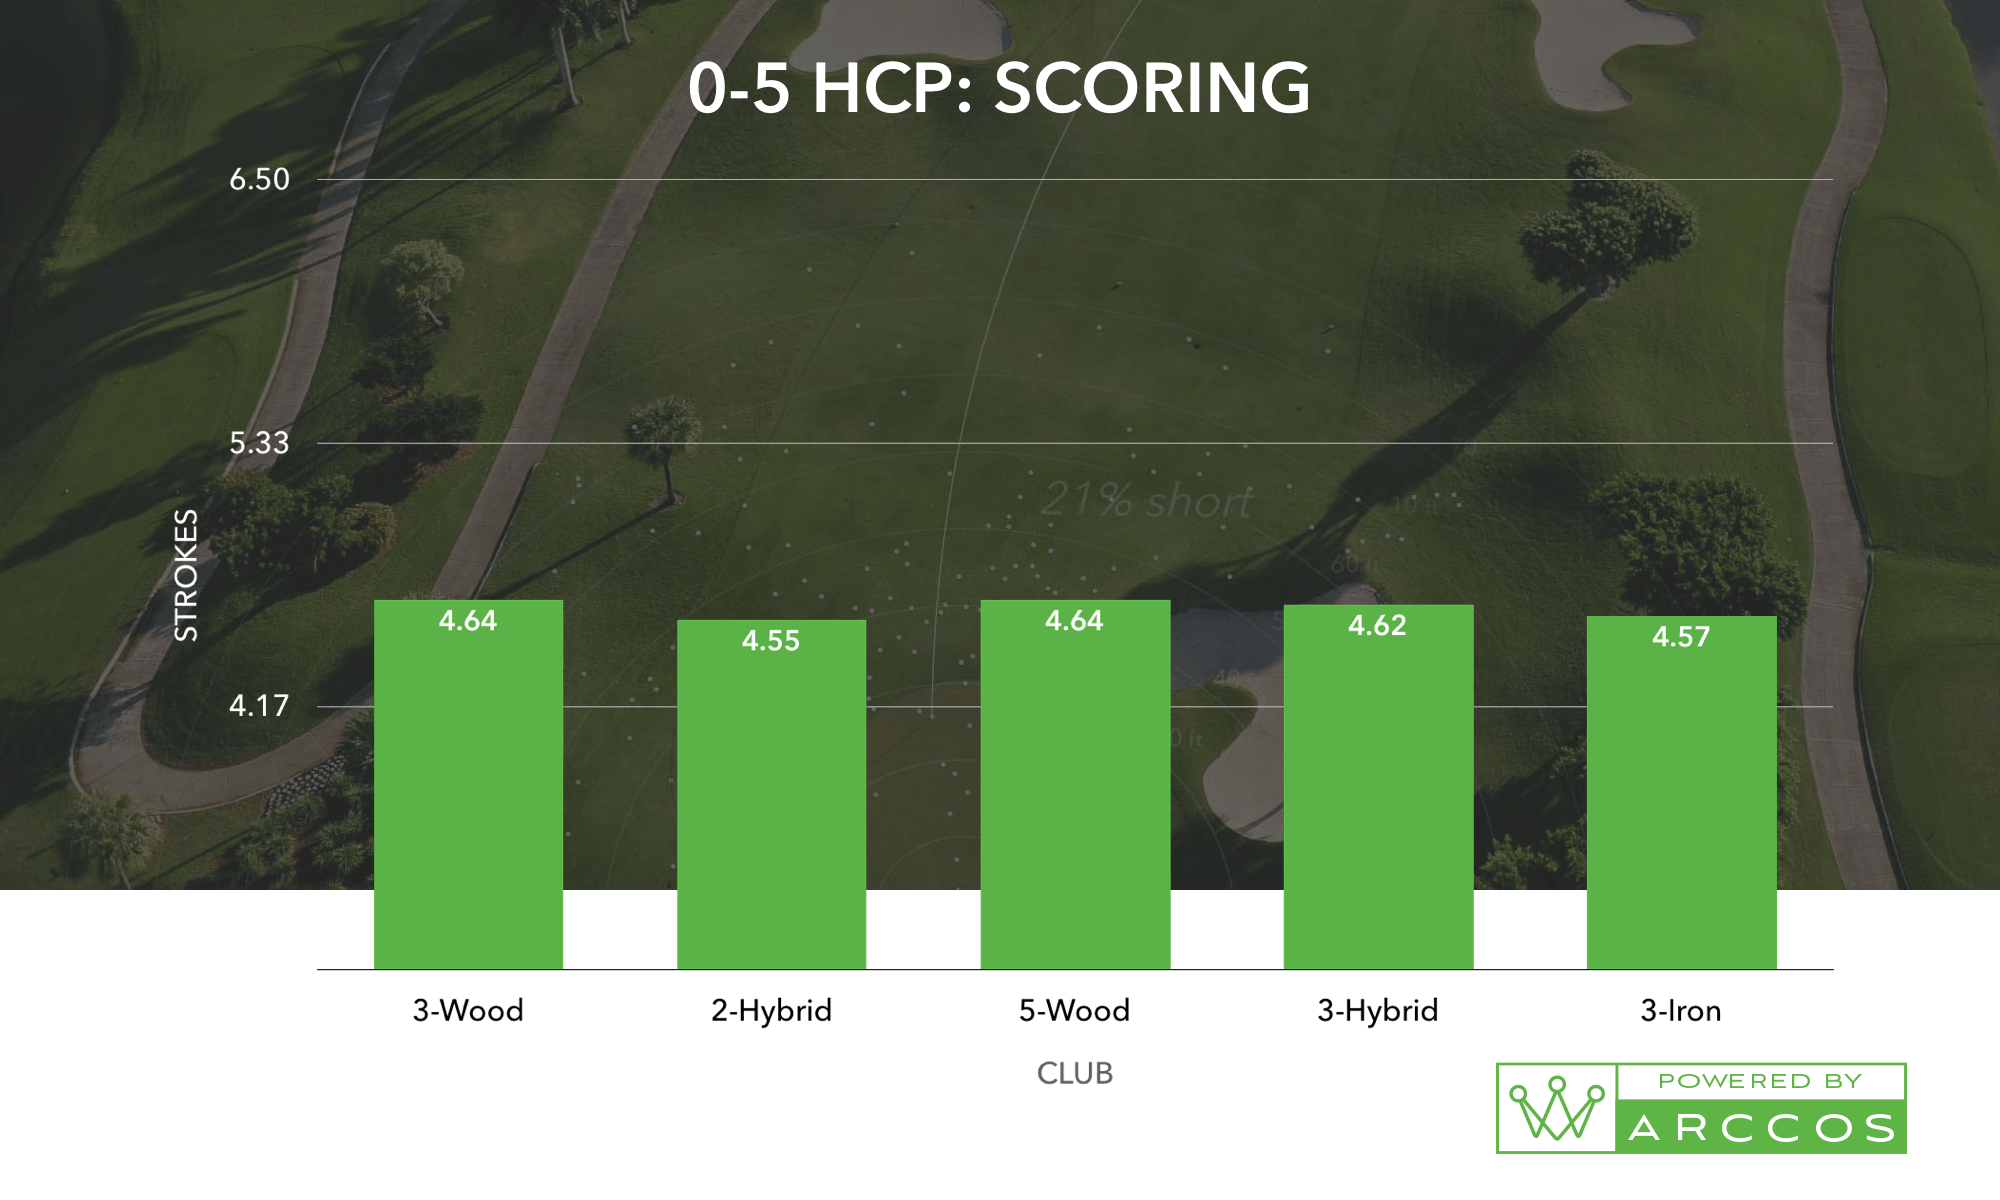 A 0-5 HCP: Scoring, the helps prove the best combo of golf irons for you